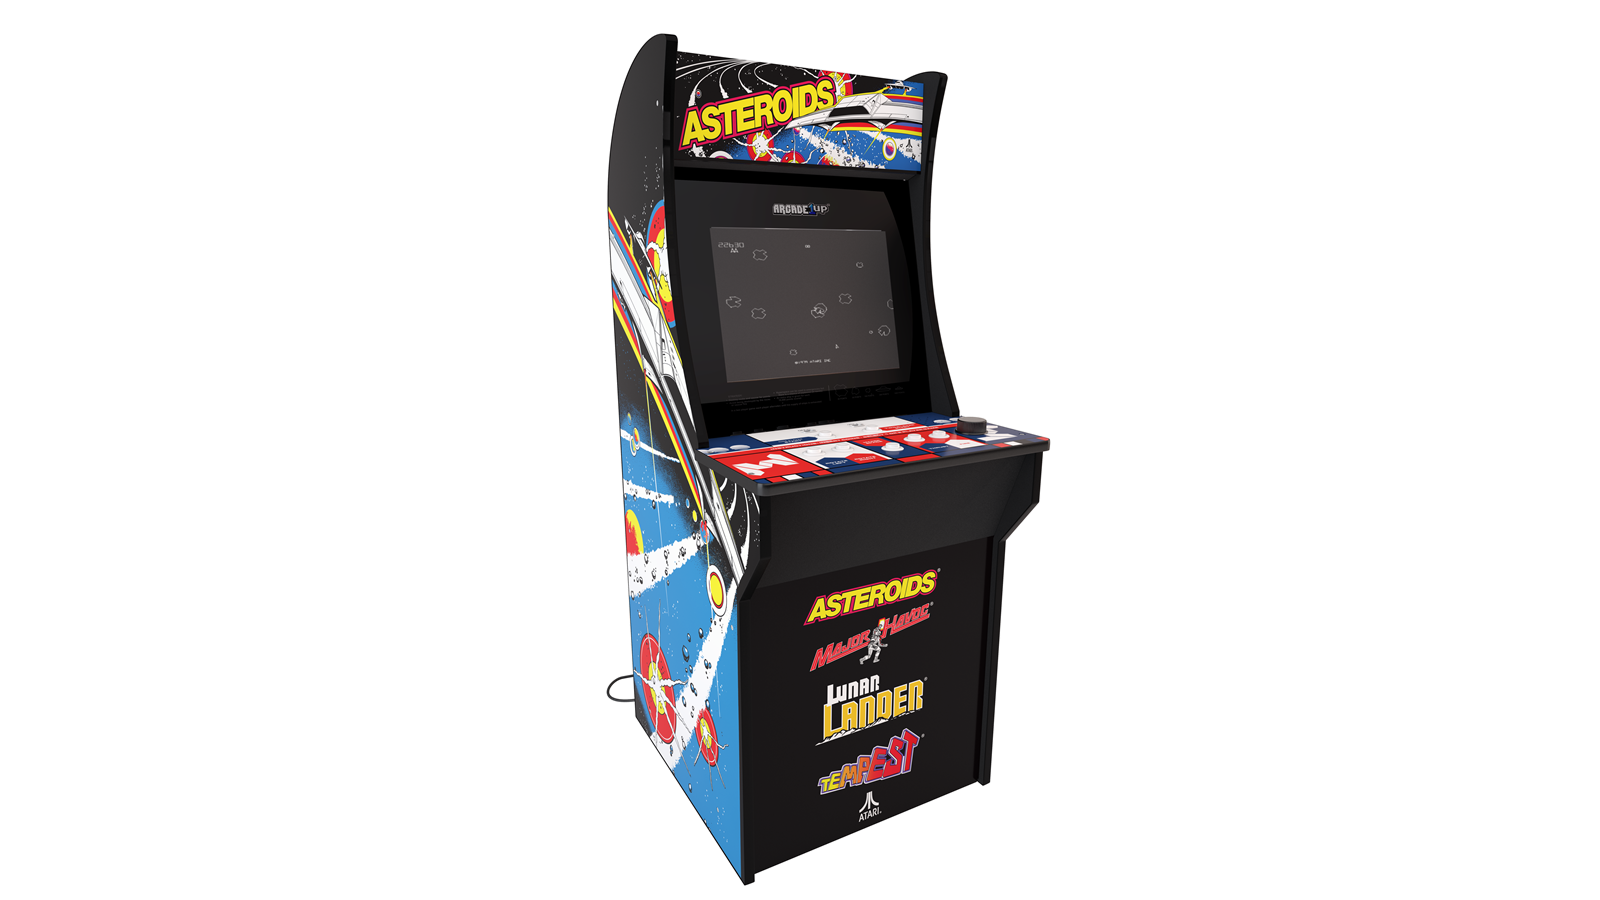 The Asteroid arcade with a spinner dial